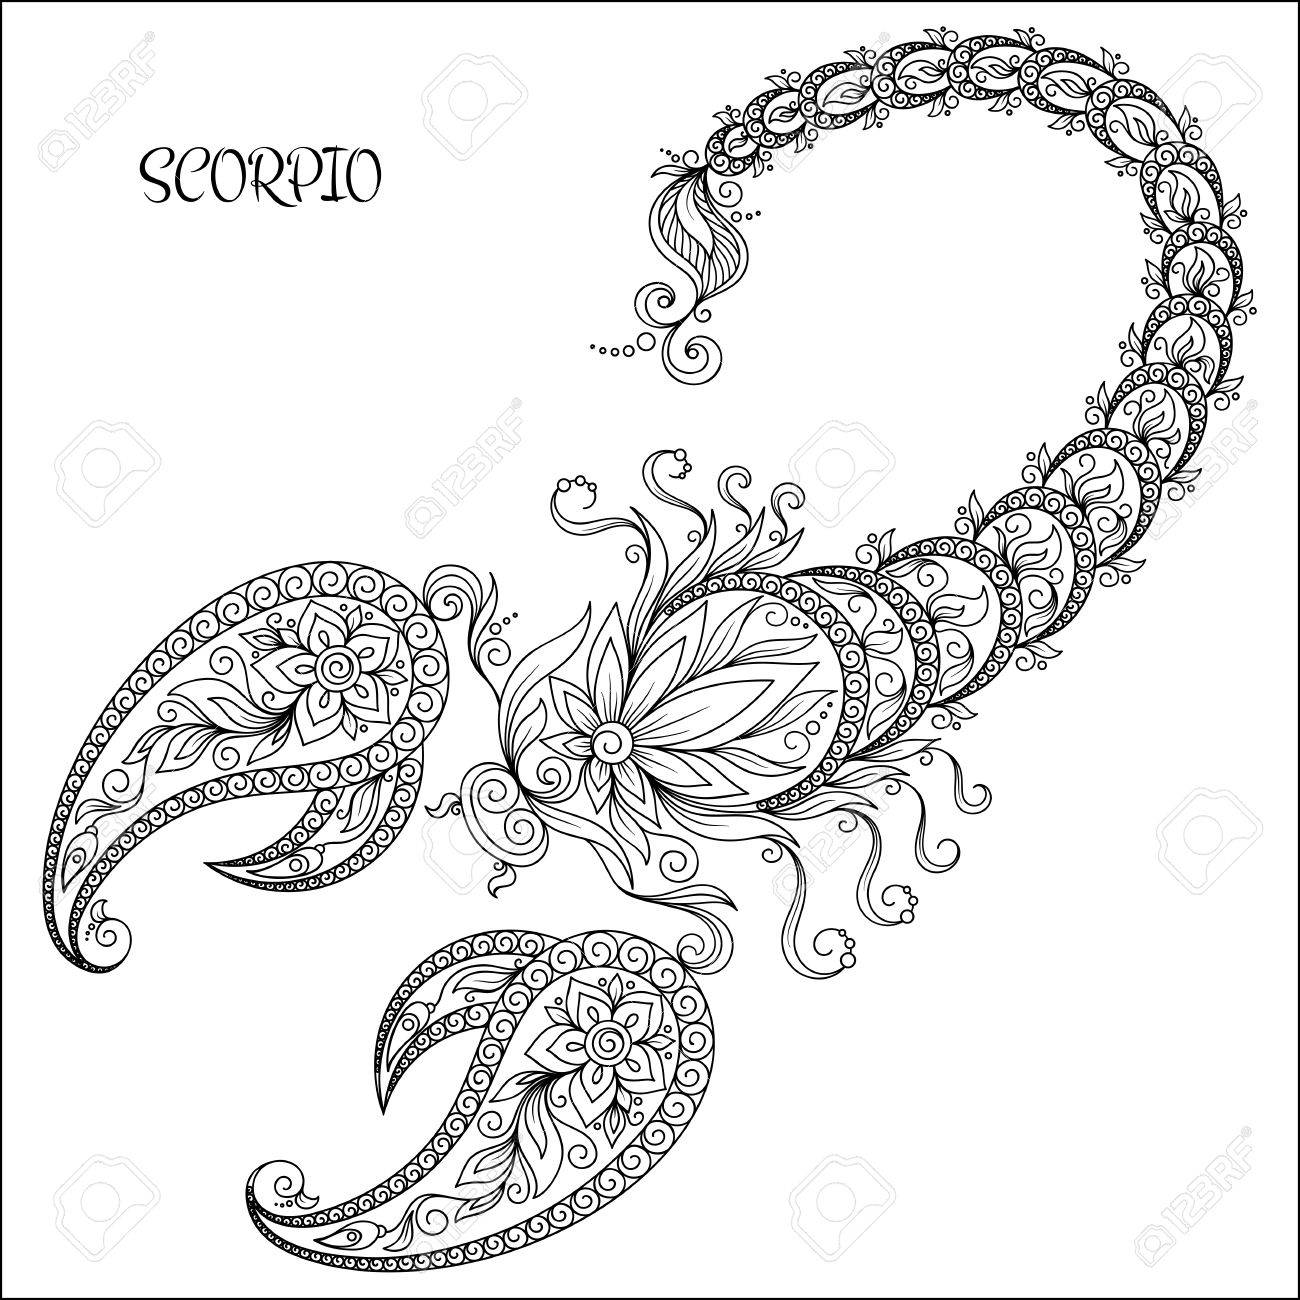 Pattern for coloring book. Hand drawn line flowers art of zodiac Scorpio. Horoscope symbol for your use. For tattoo art, coloring books set. - 49172367